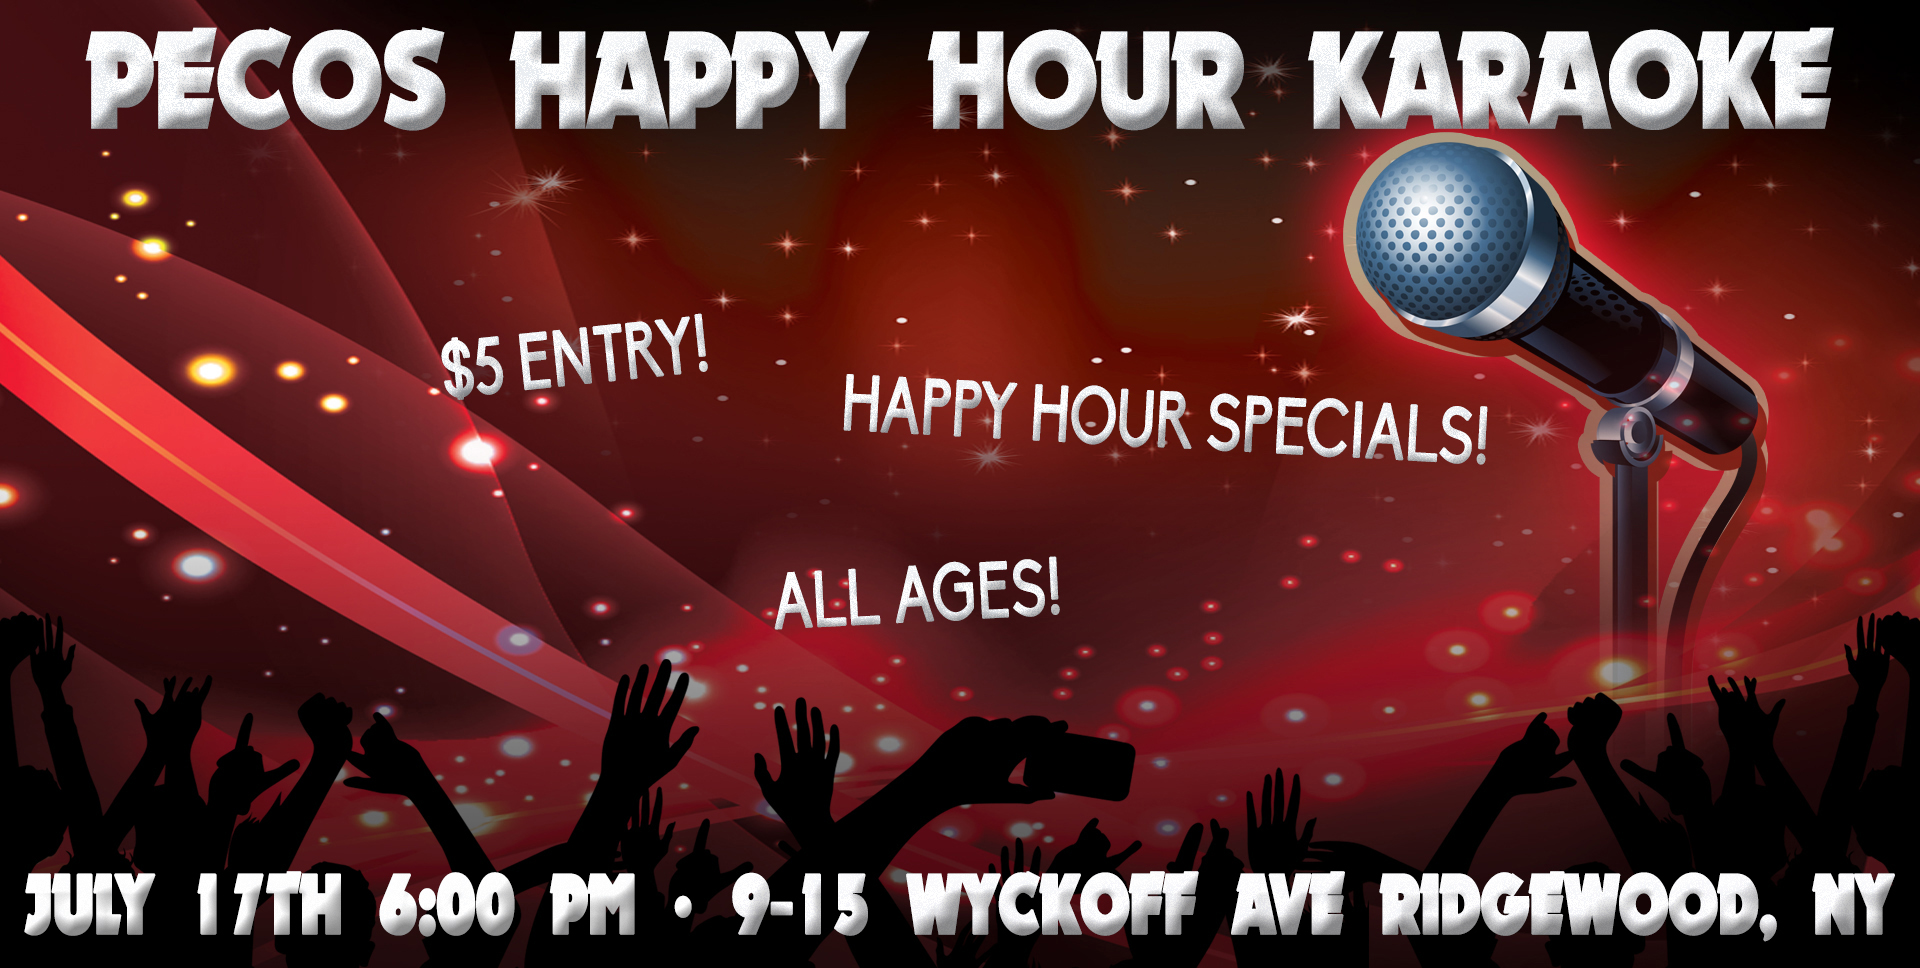 We are doing karaoke!!!! Come and SING on the STAGE!  $5 entry Happy Hour specials at the bar: $1 off all beers, $2 off all well drinks All Ages